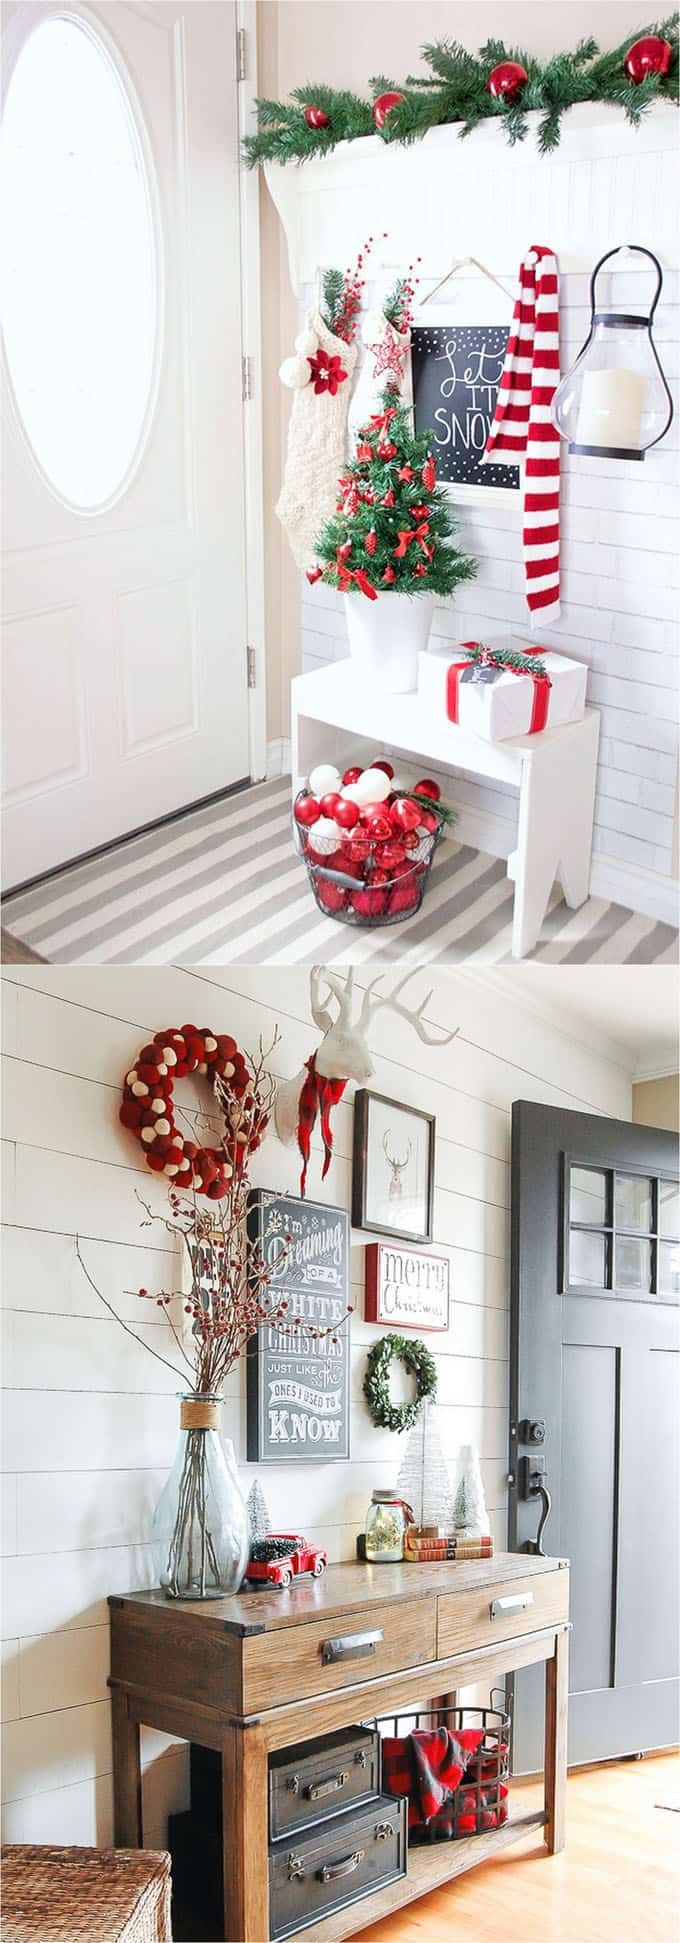 100-favorite-christmas-decorating-ideas-every-room-apieceofrainbowblog-2